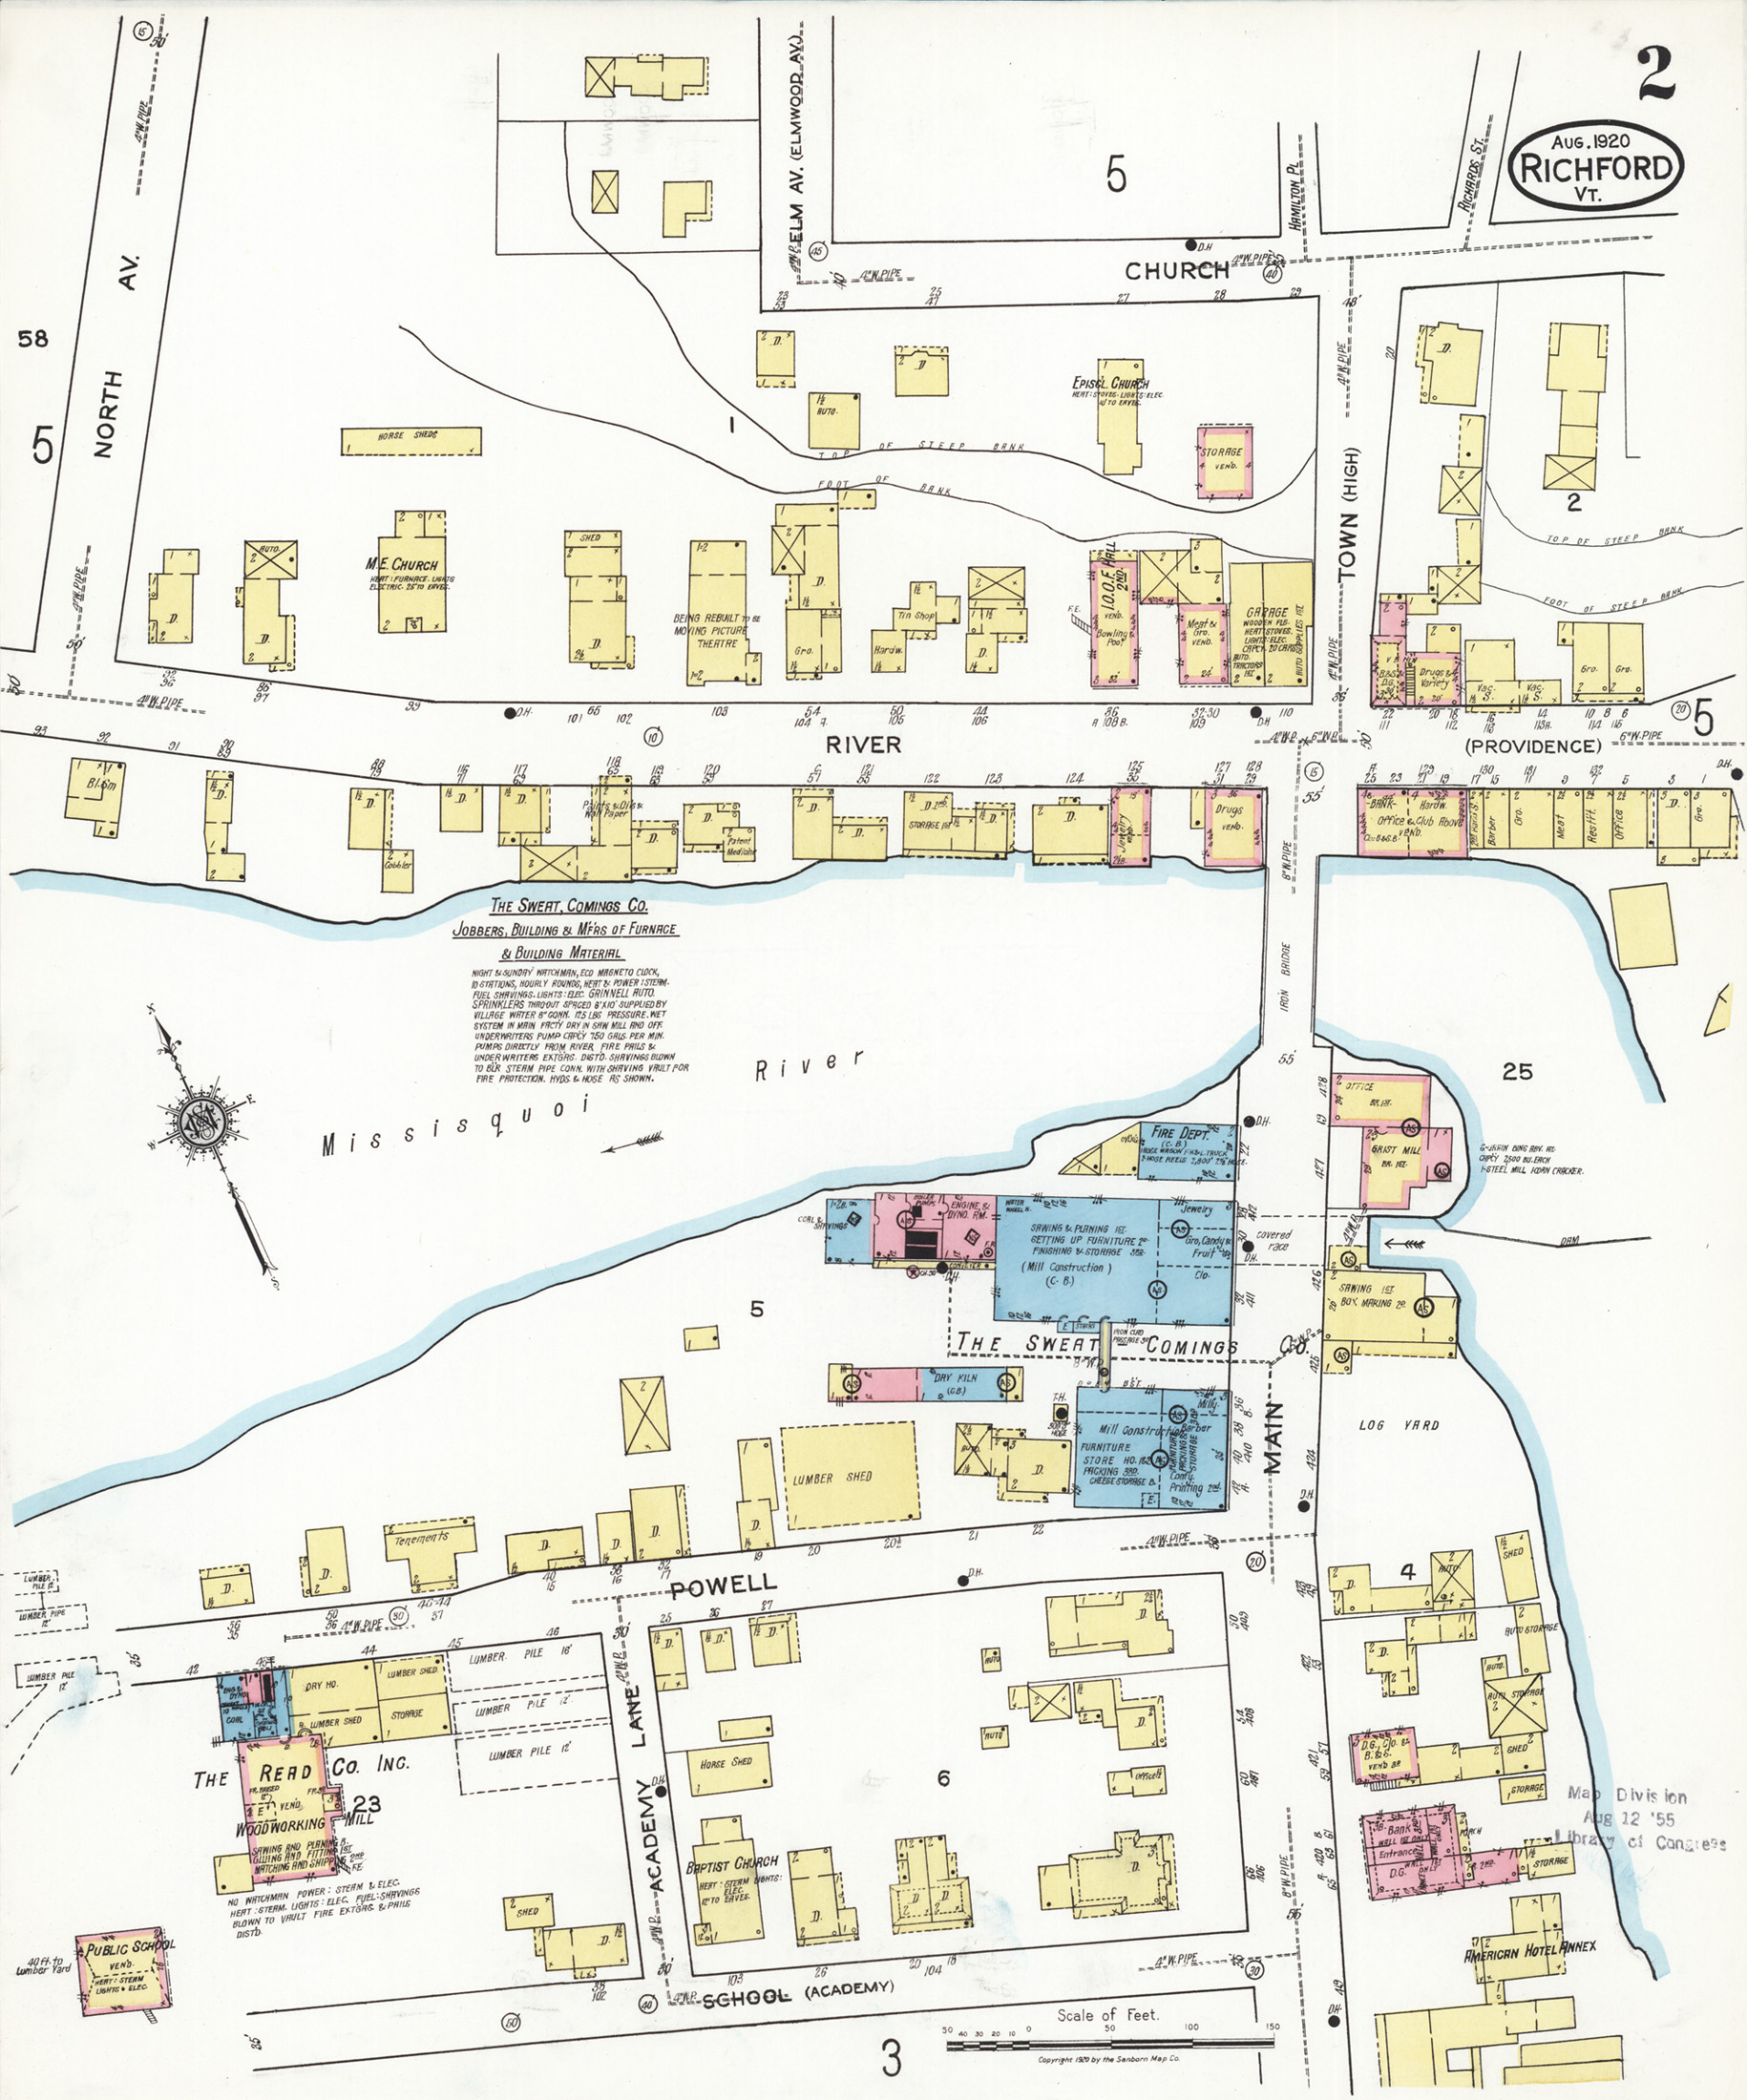 1920 Sanborn Map of Richford, Vermont